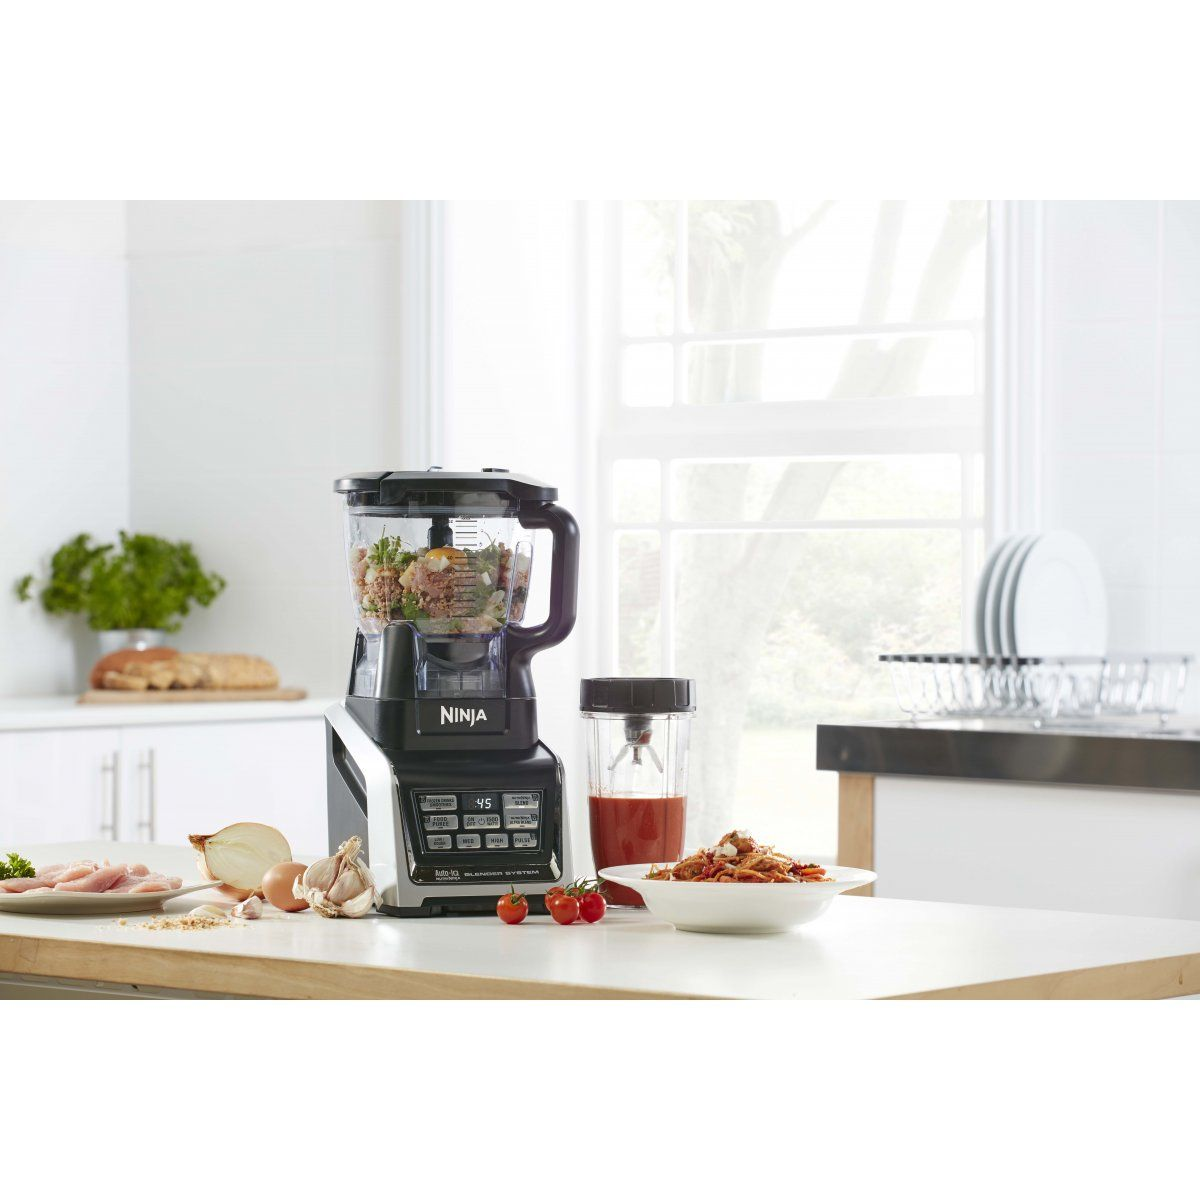 Ninja Kitchen System with Nutri Ninja | Ninja® UK - Rule the ...